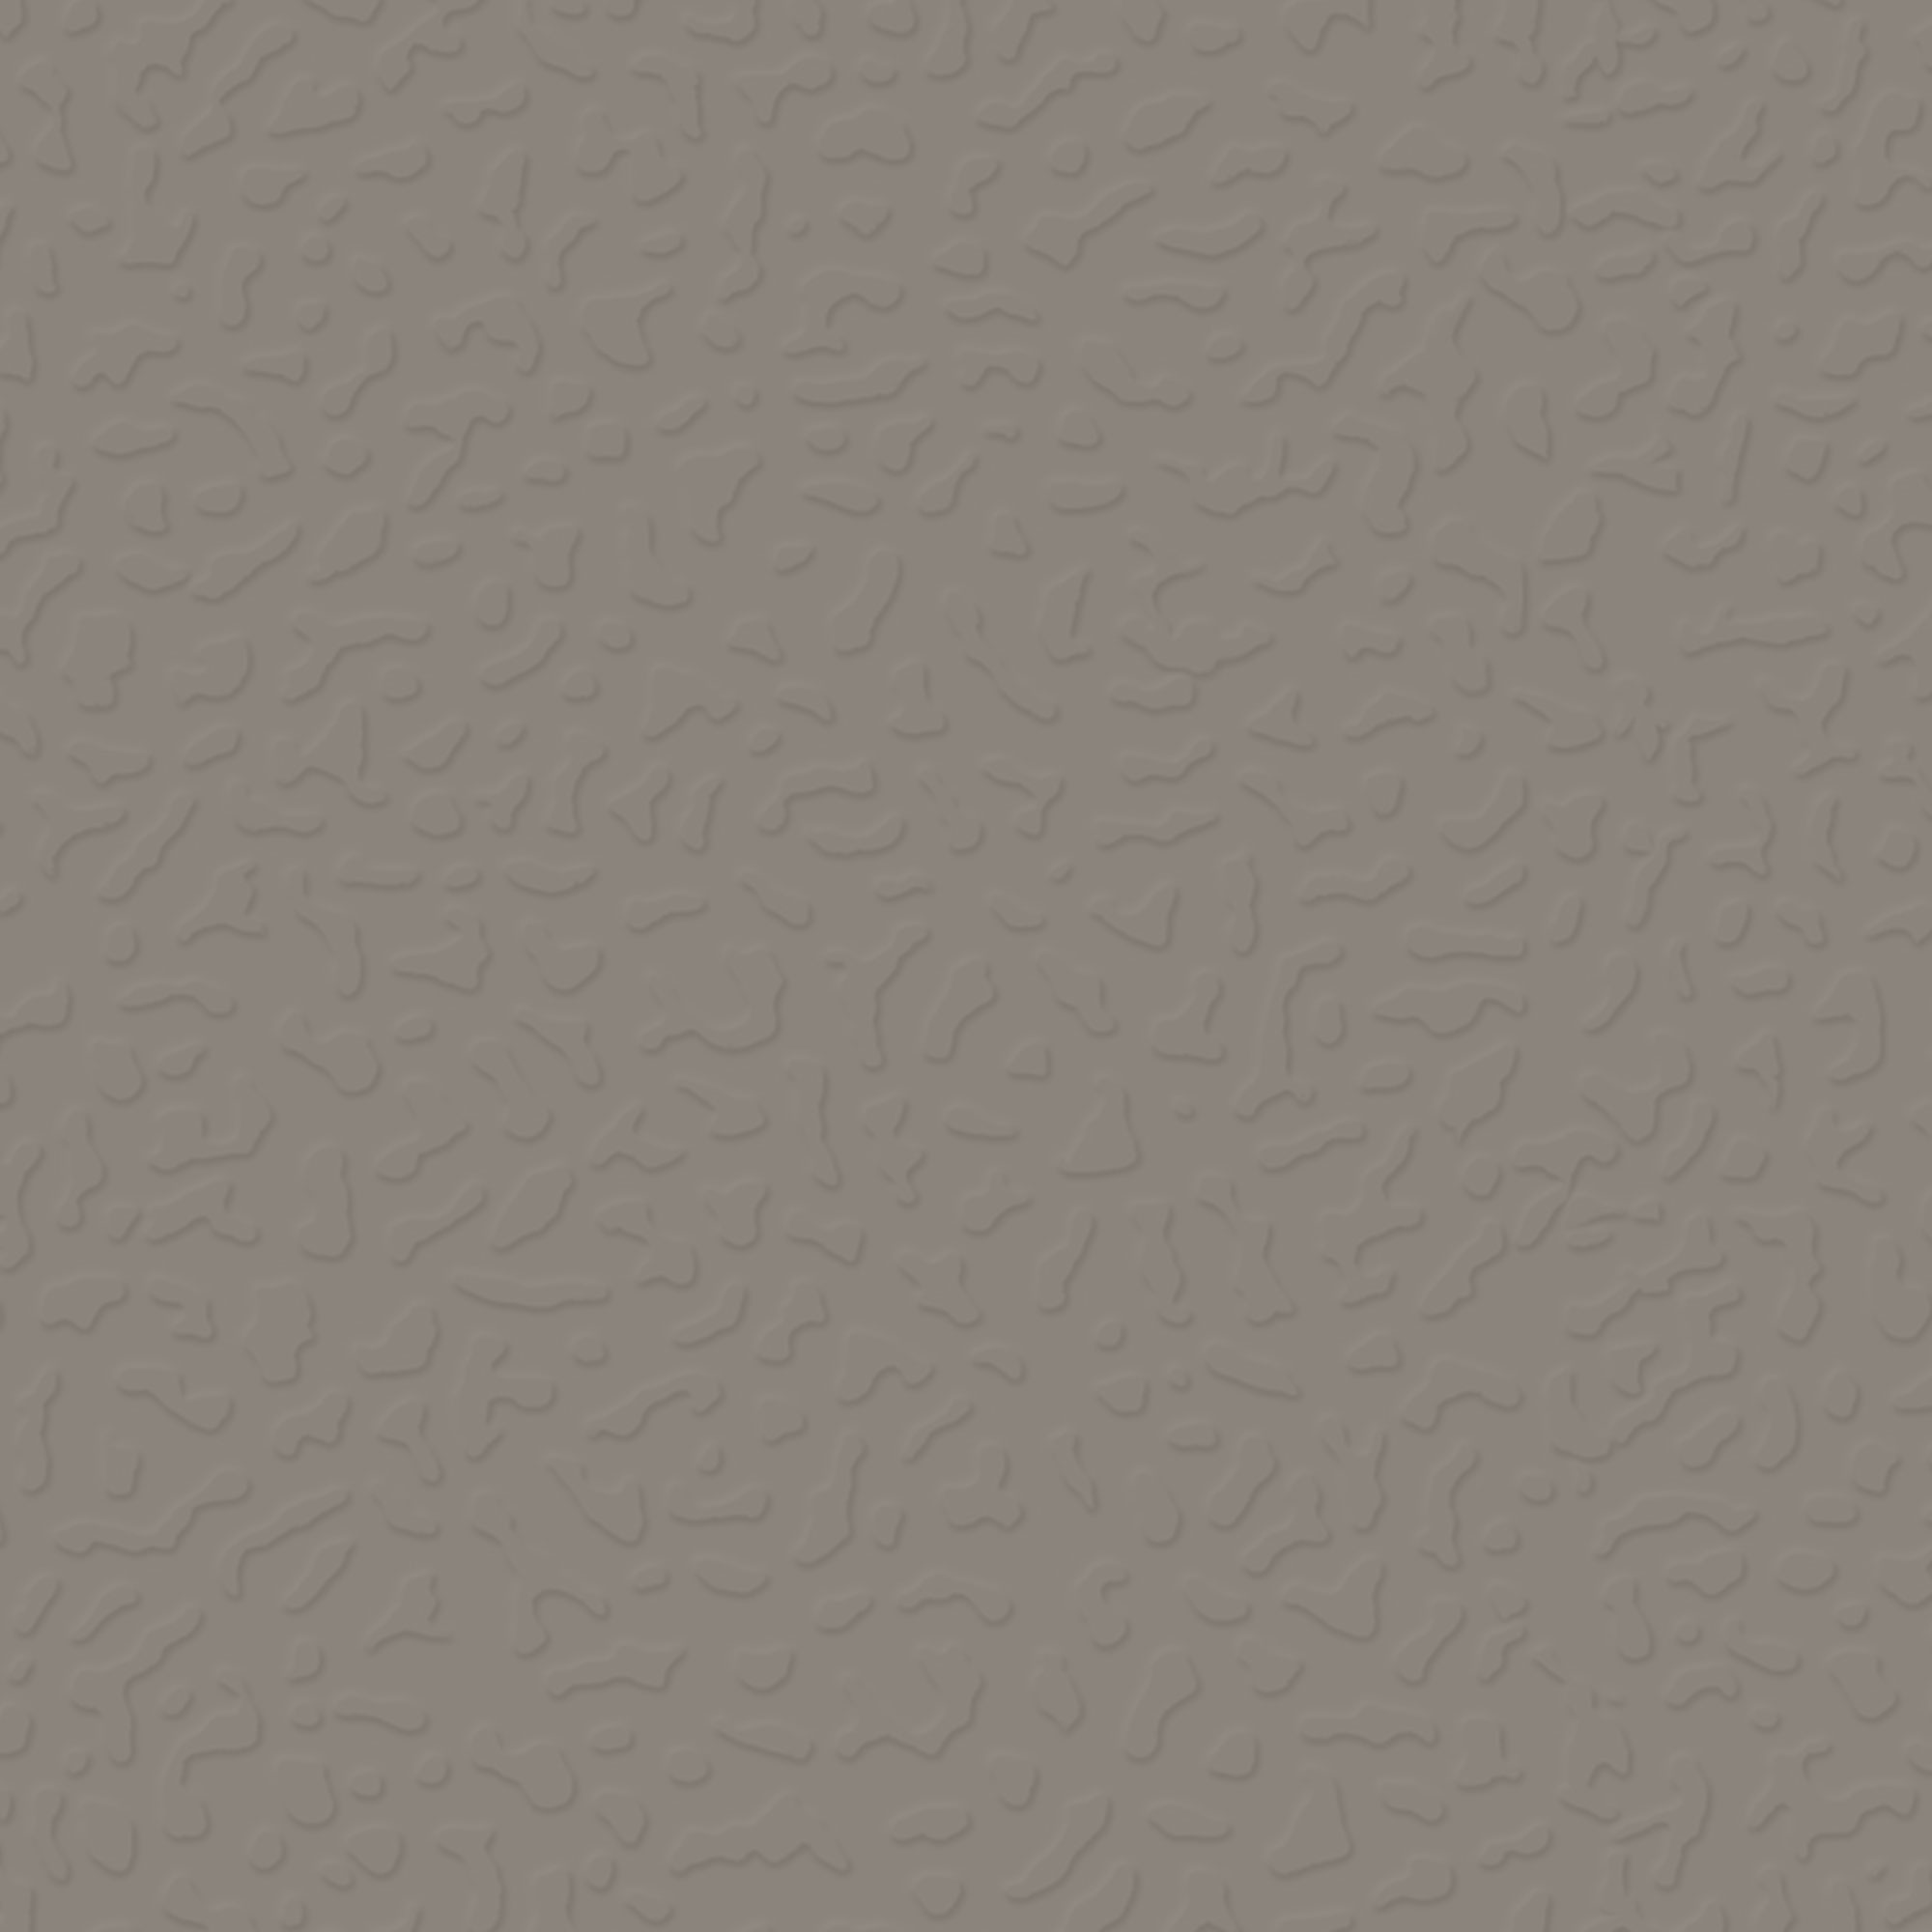 Roppe Rubber Tile 900 - Textured Design (993) Pewter LB996178